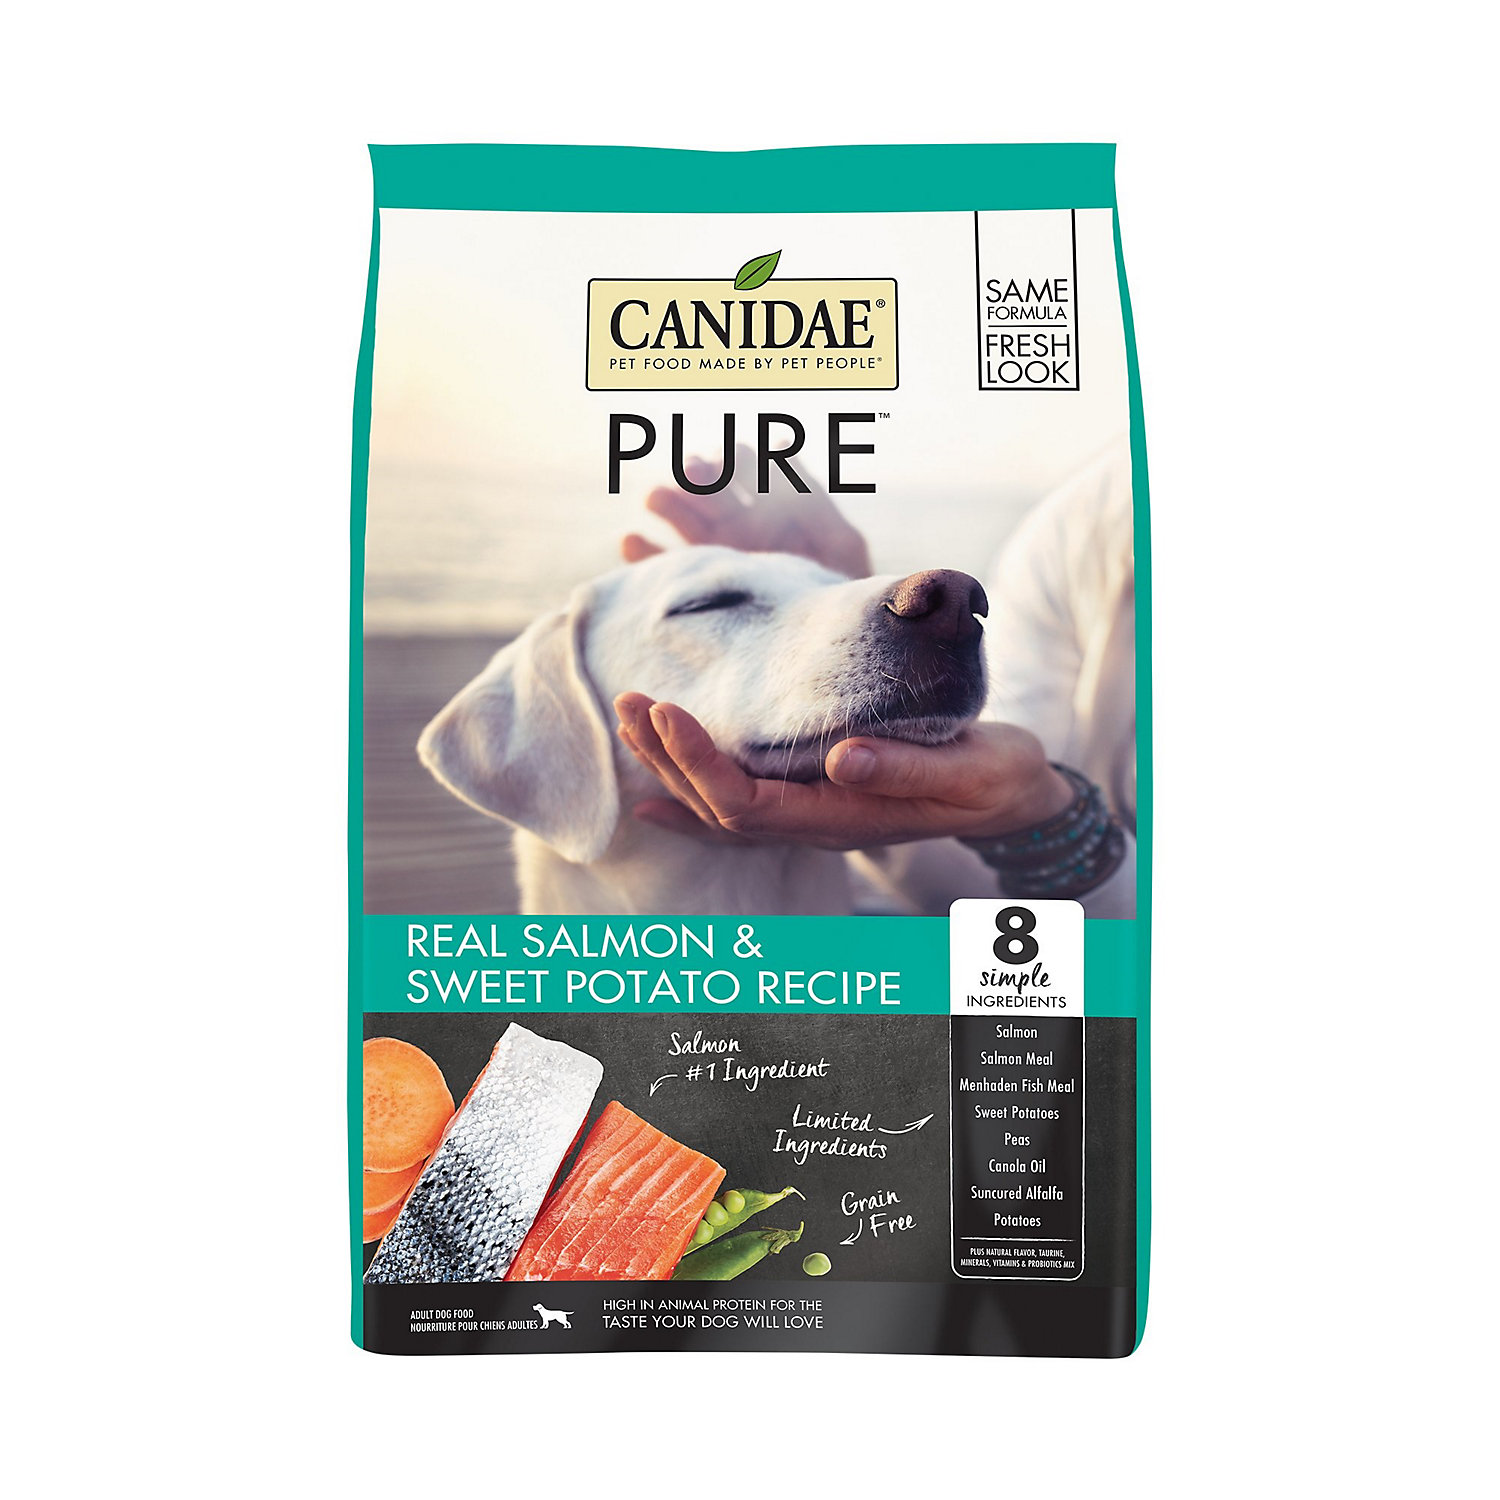 Canidae Natural Pet Foods Petco